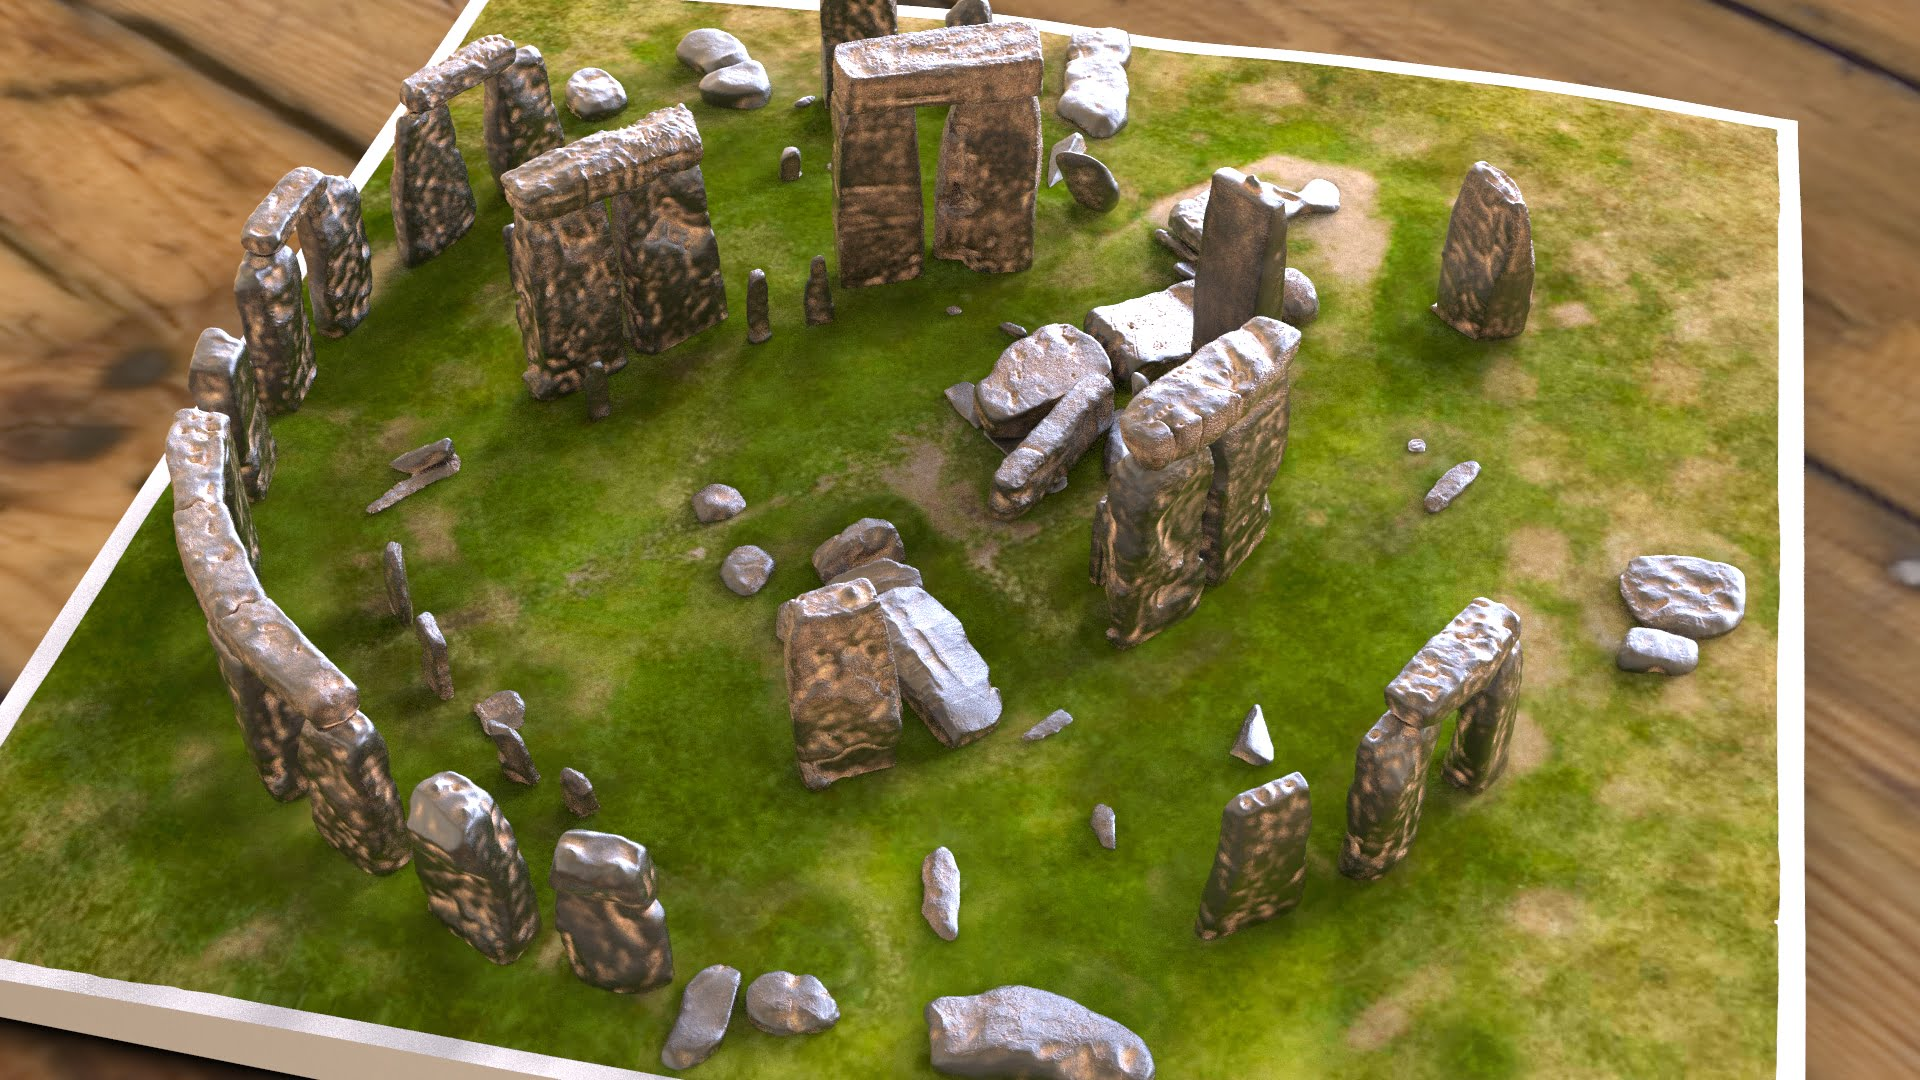 Buy Stonehenge Models: Light rust patina on cold cast Stonehenge model replica 195 x 195 mm or 7.7 x 7.7 inches square base with grass decal with or without numbered stones on ground map 001  - 200th scale pick n mix -